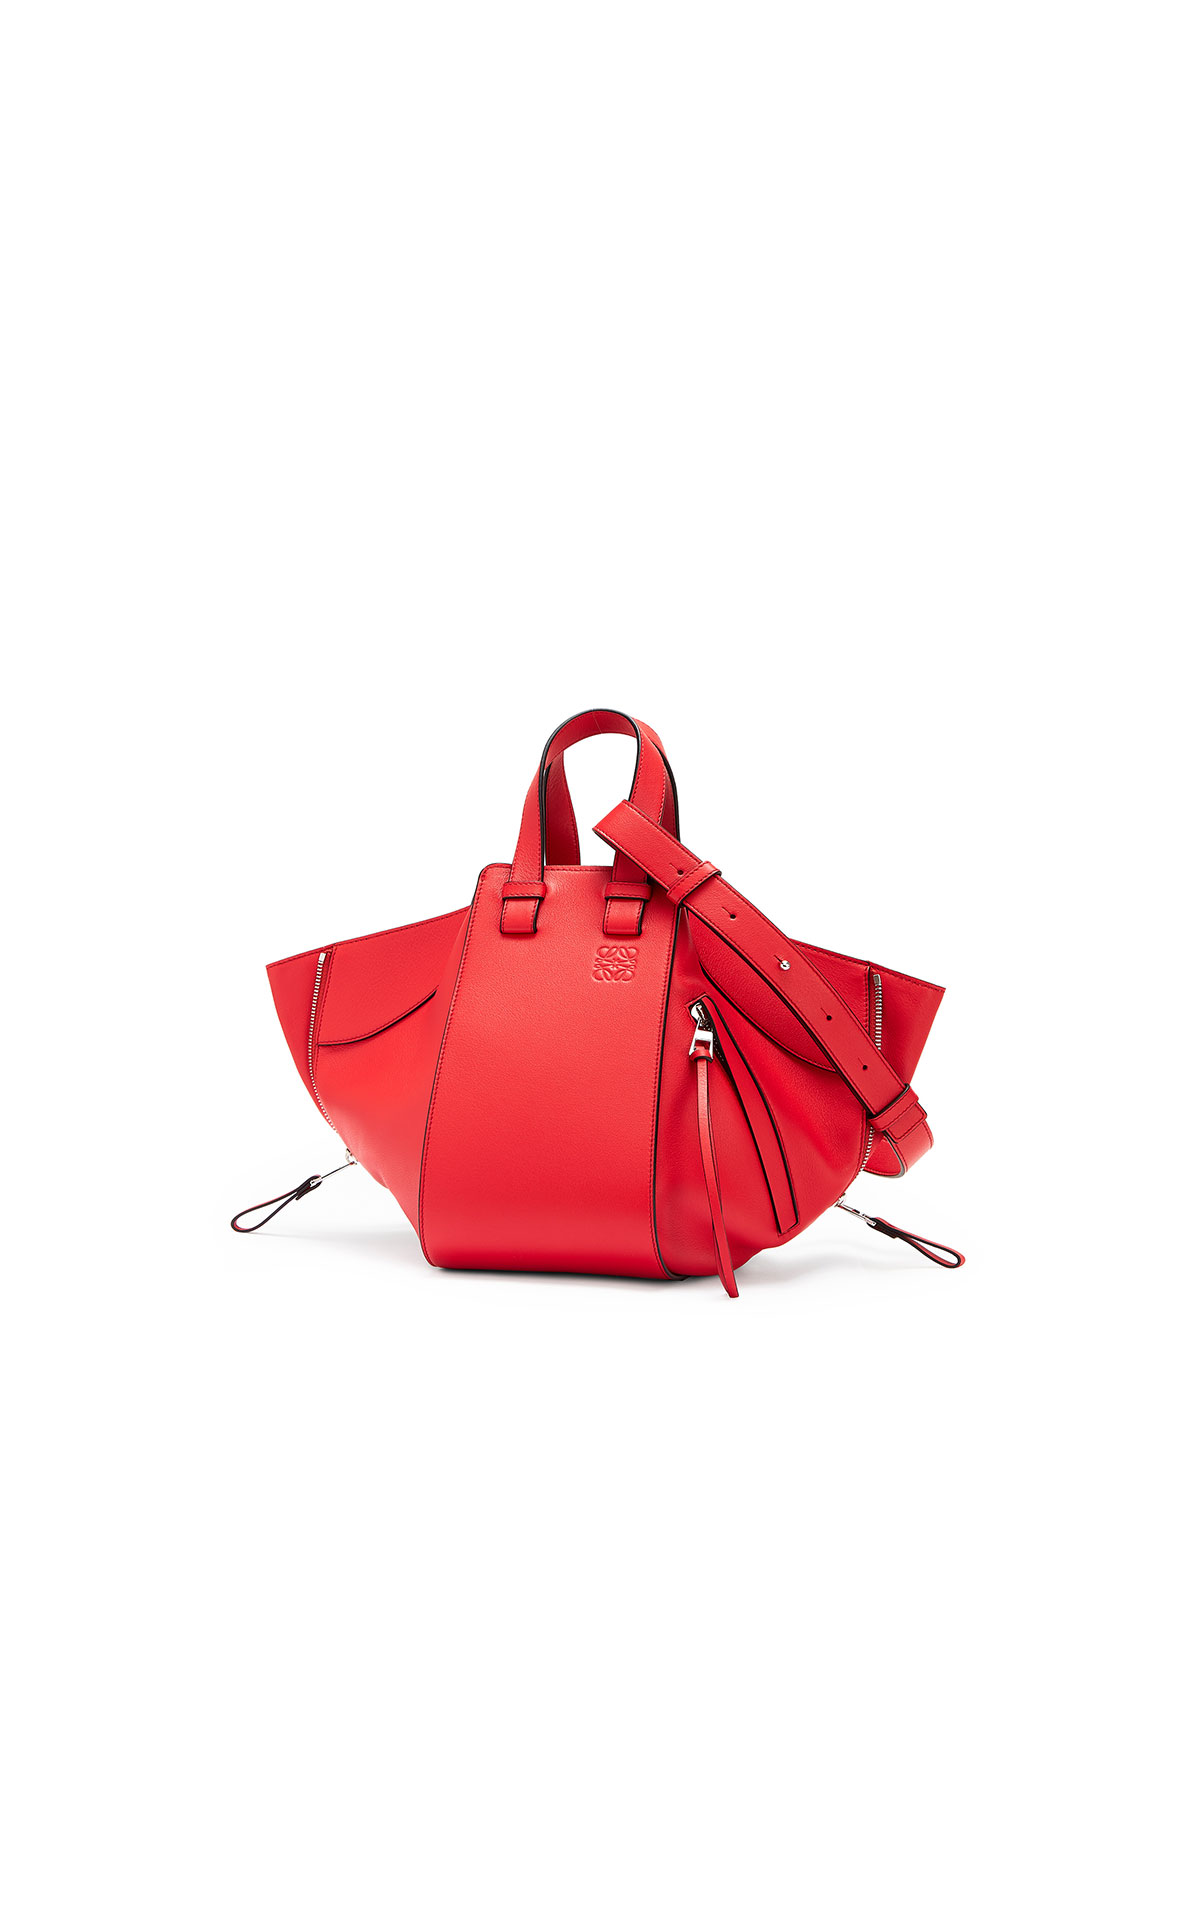 loewe HAMMOCK SMALL BAG la vallée village